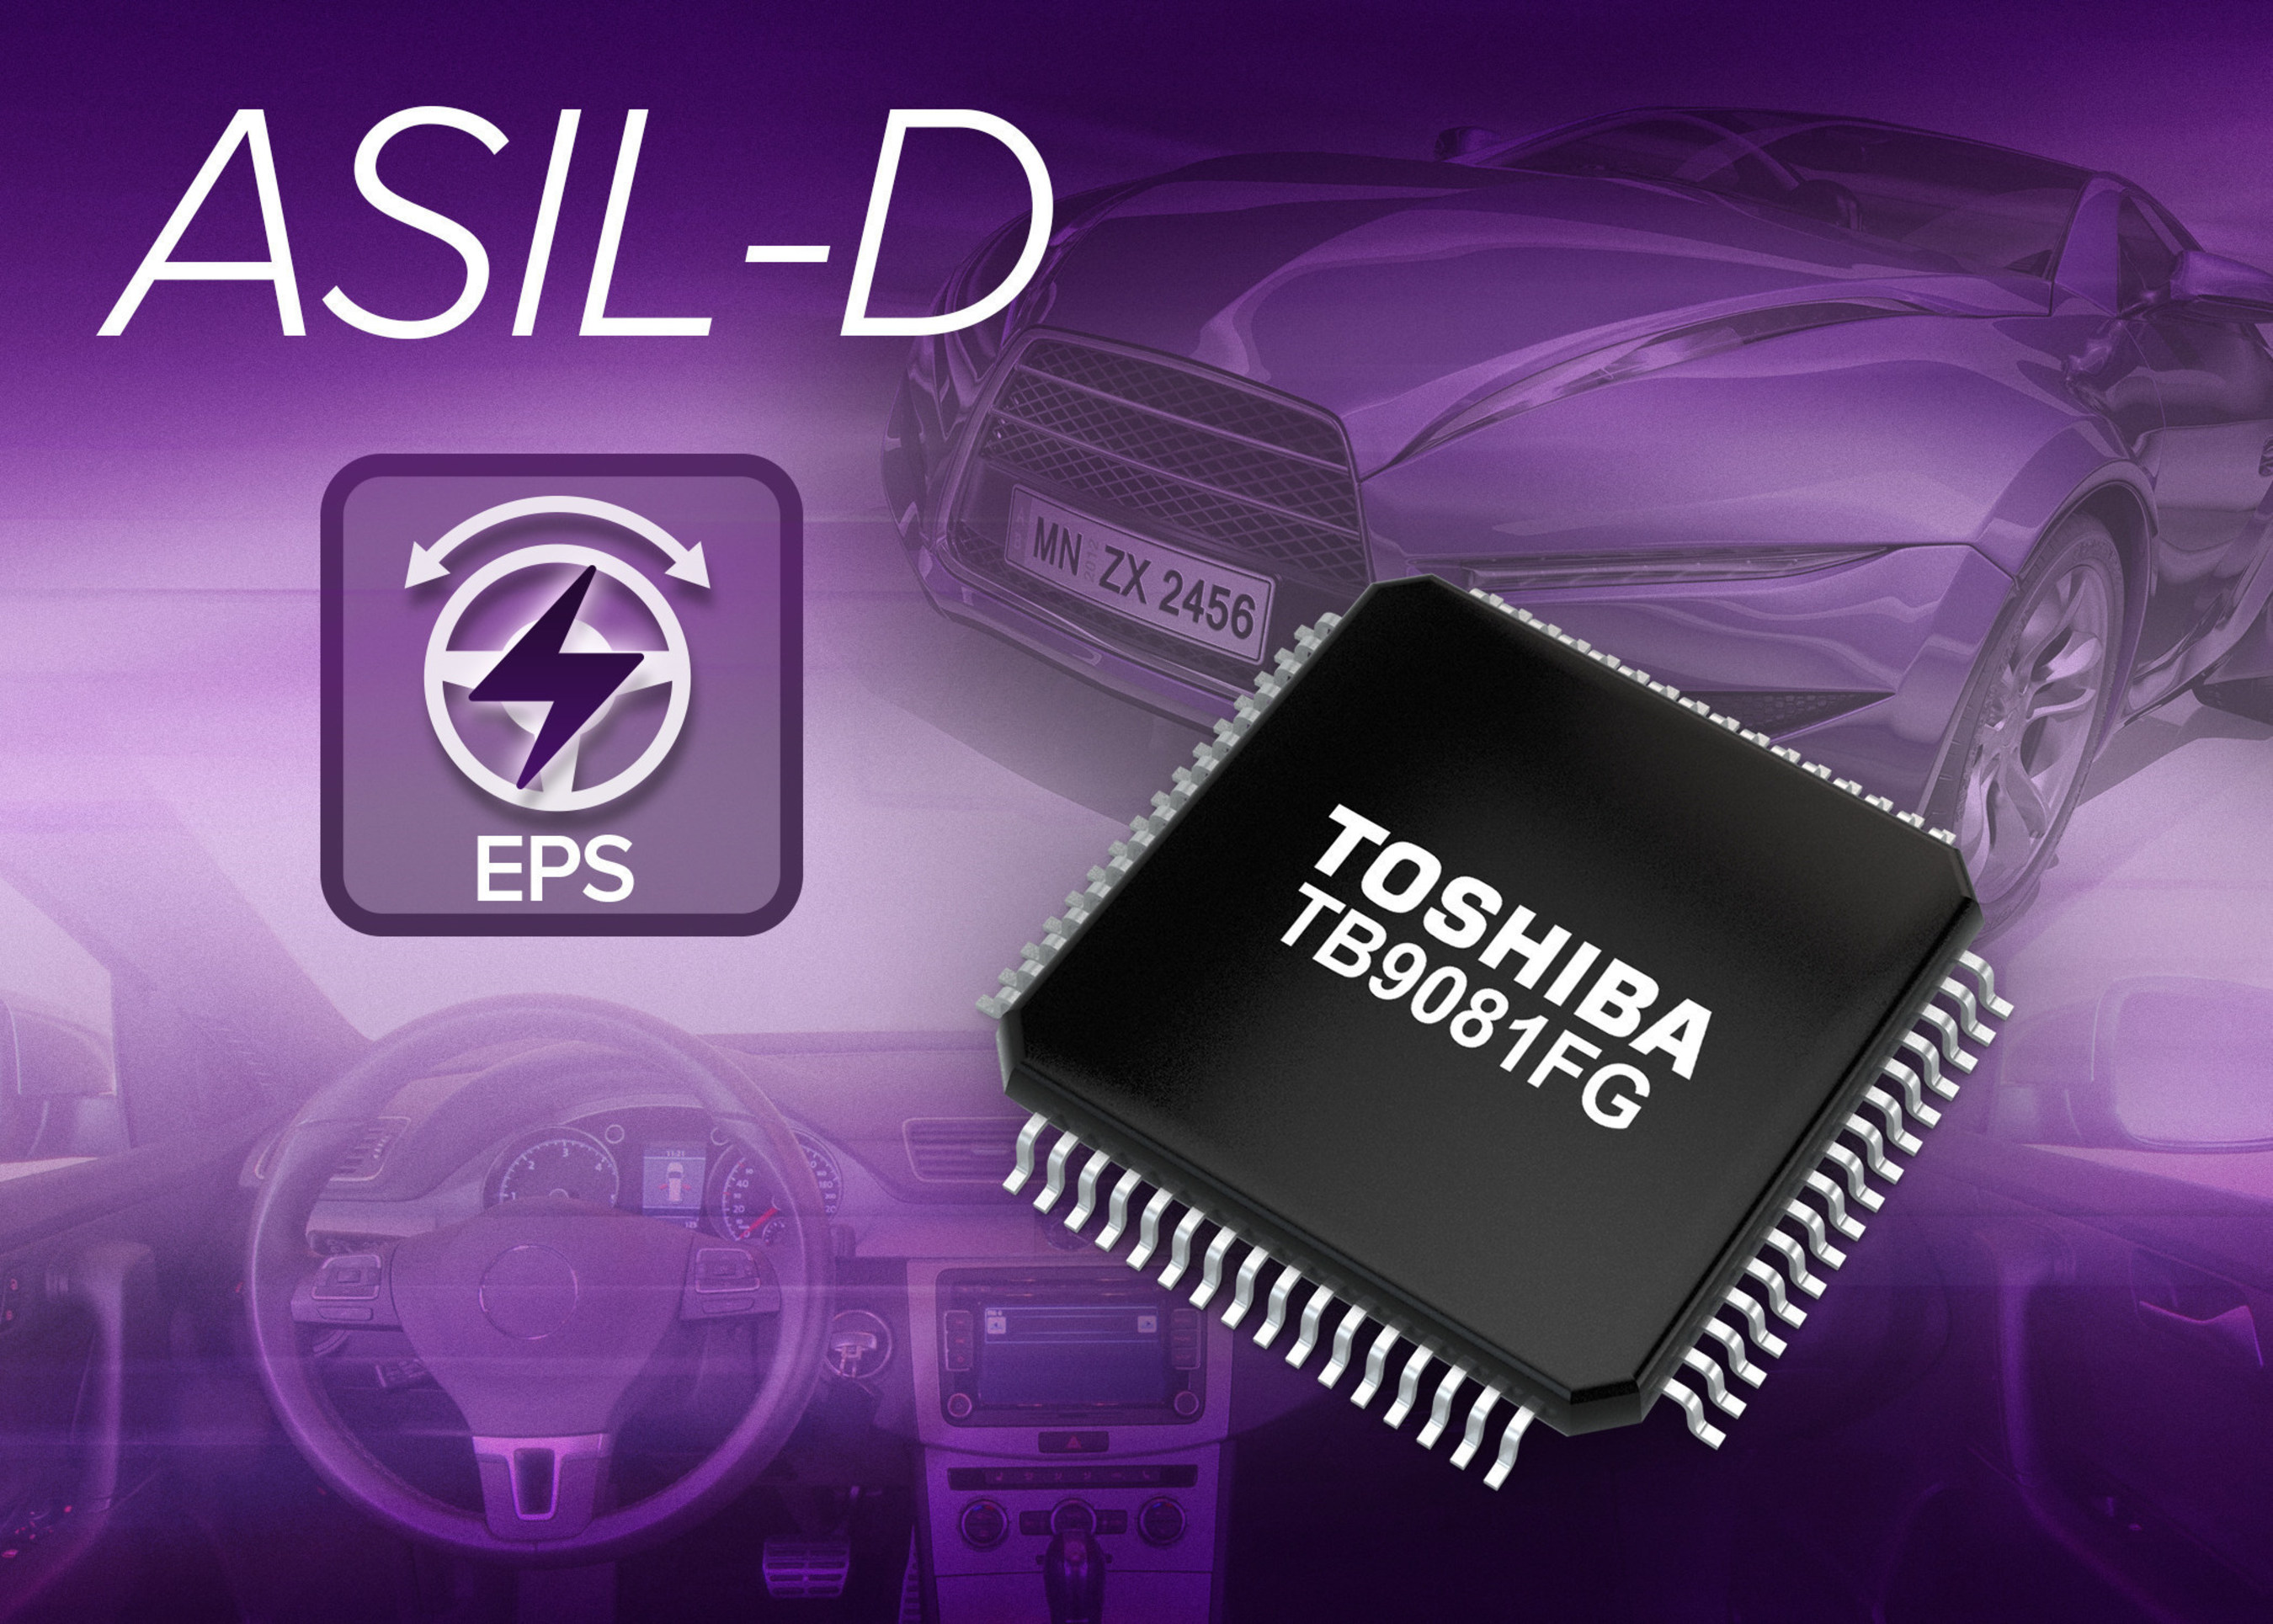 Toshiba TB9081FG motor pre-driver IC is fully ISO26262 ASIL-D compliant for use in electric power steering systems.